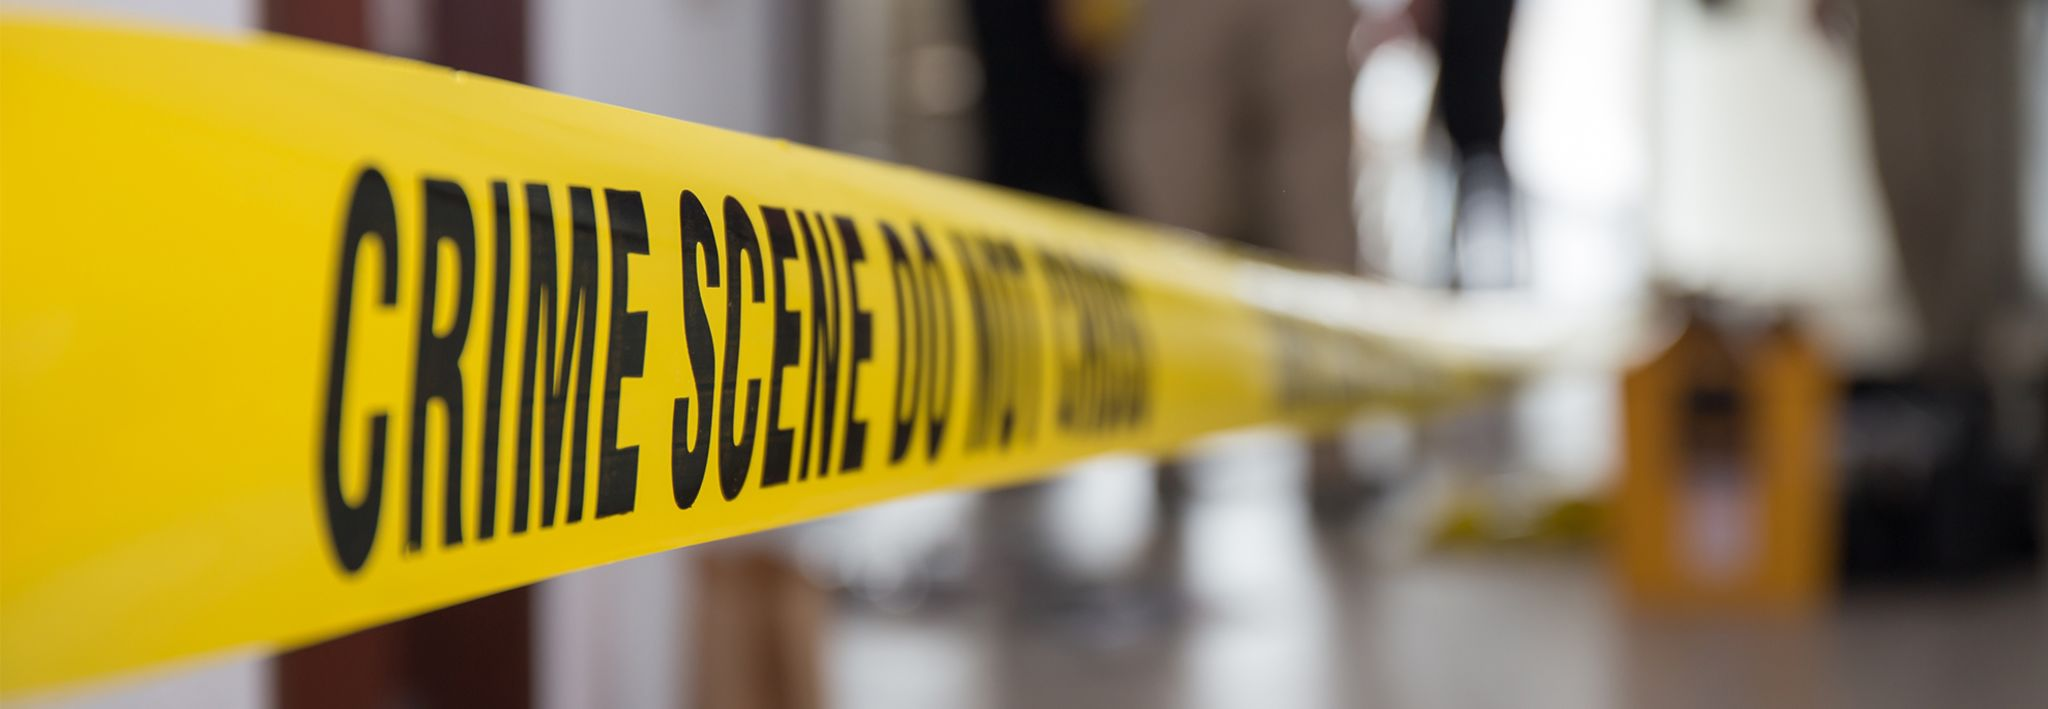 Crime scene tape is up at the scene of a crime.